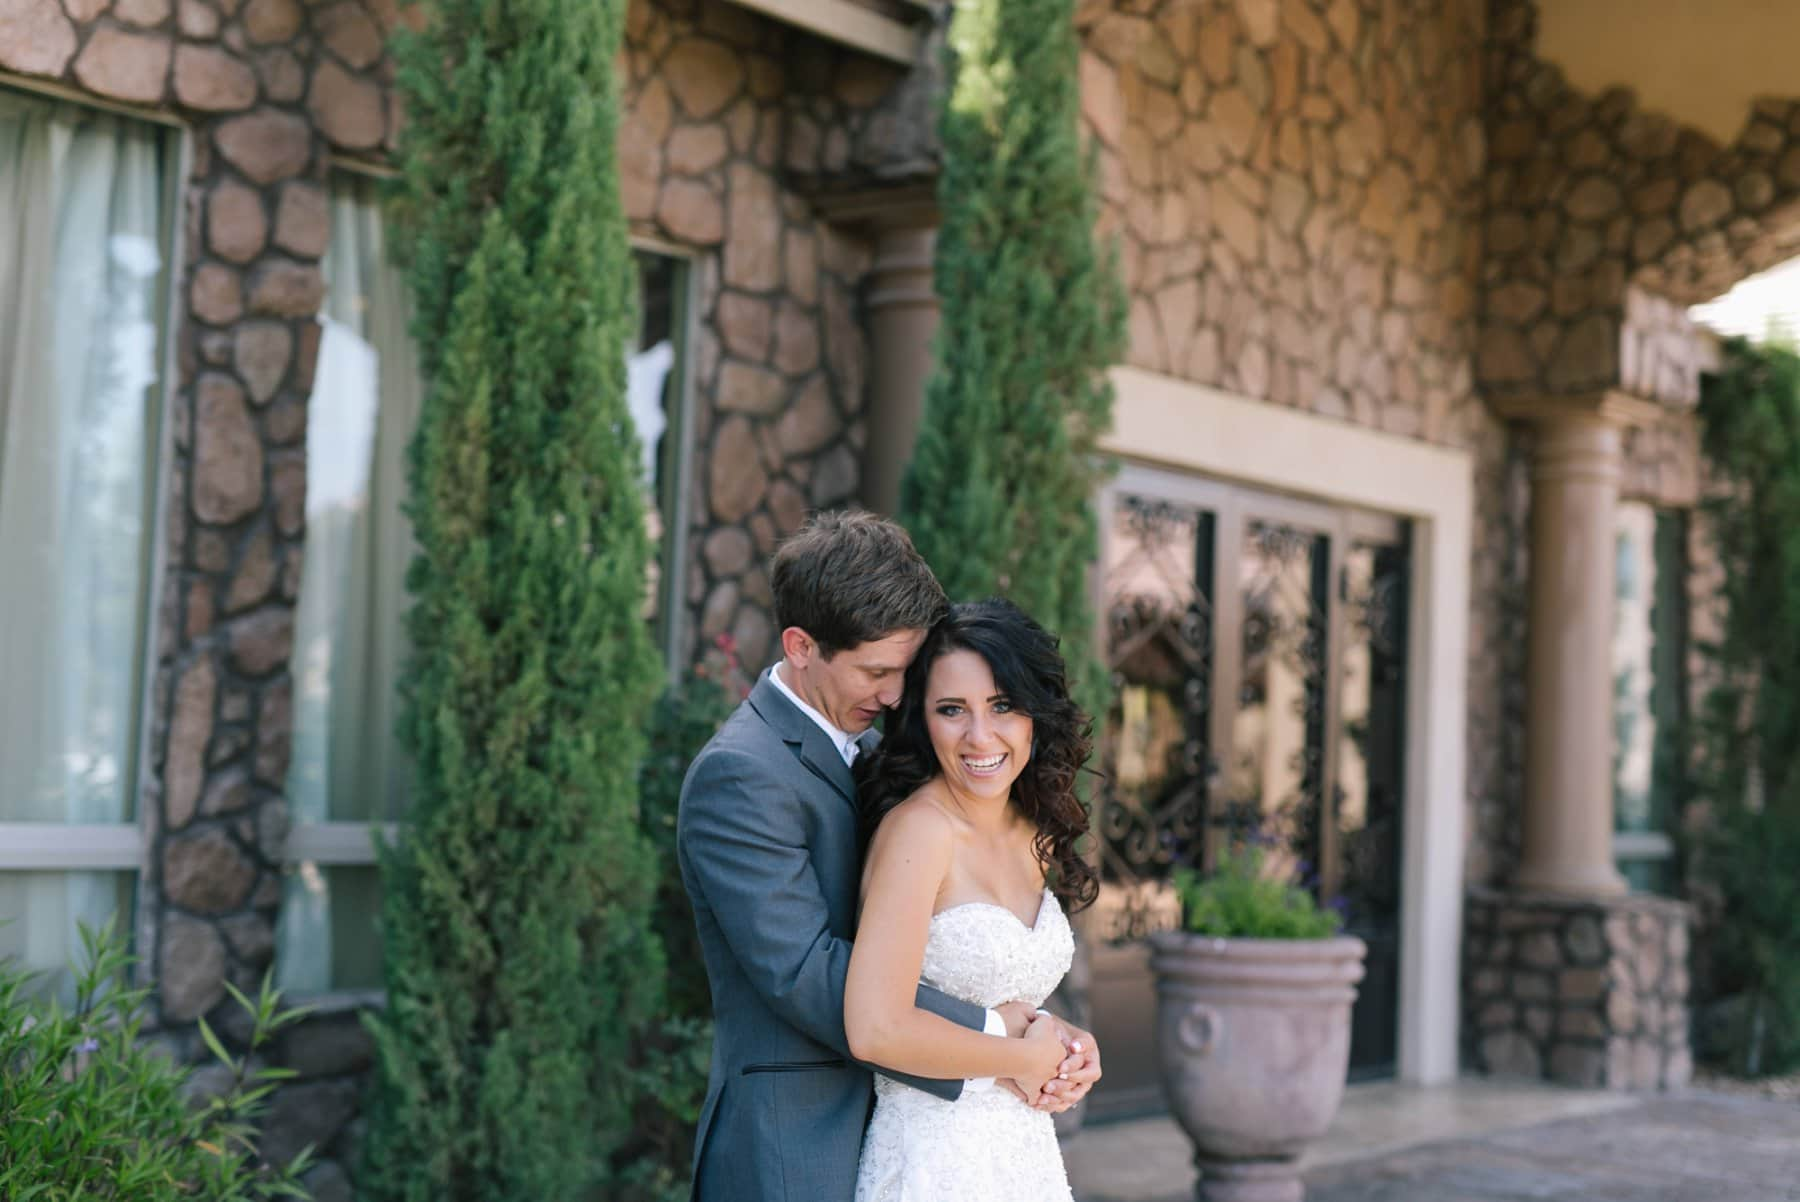 Superstition Manor Mesa AZ bride & groom photos